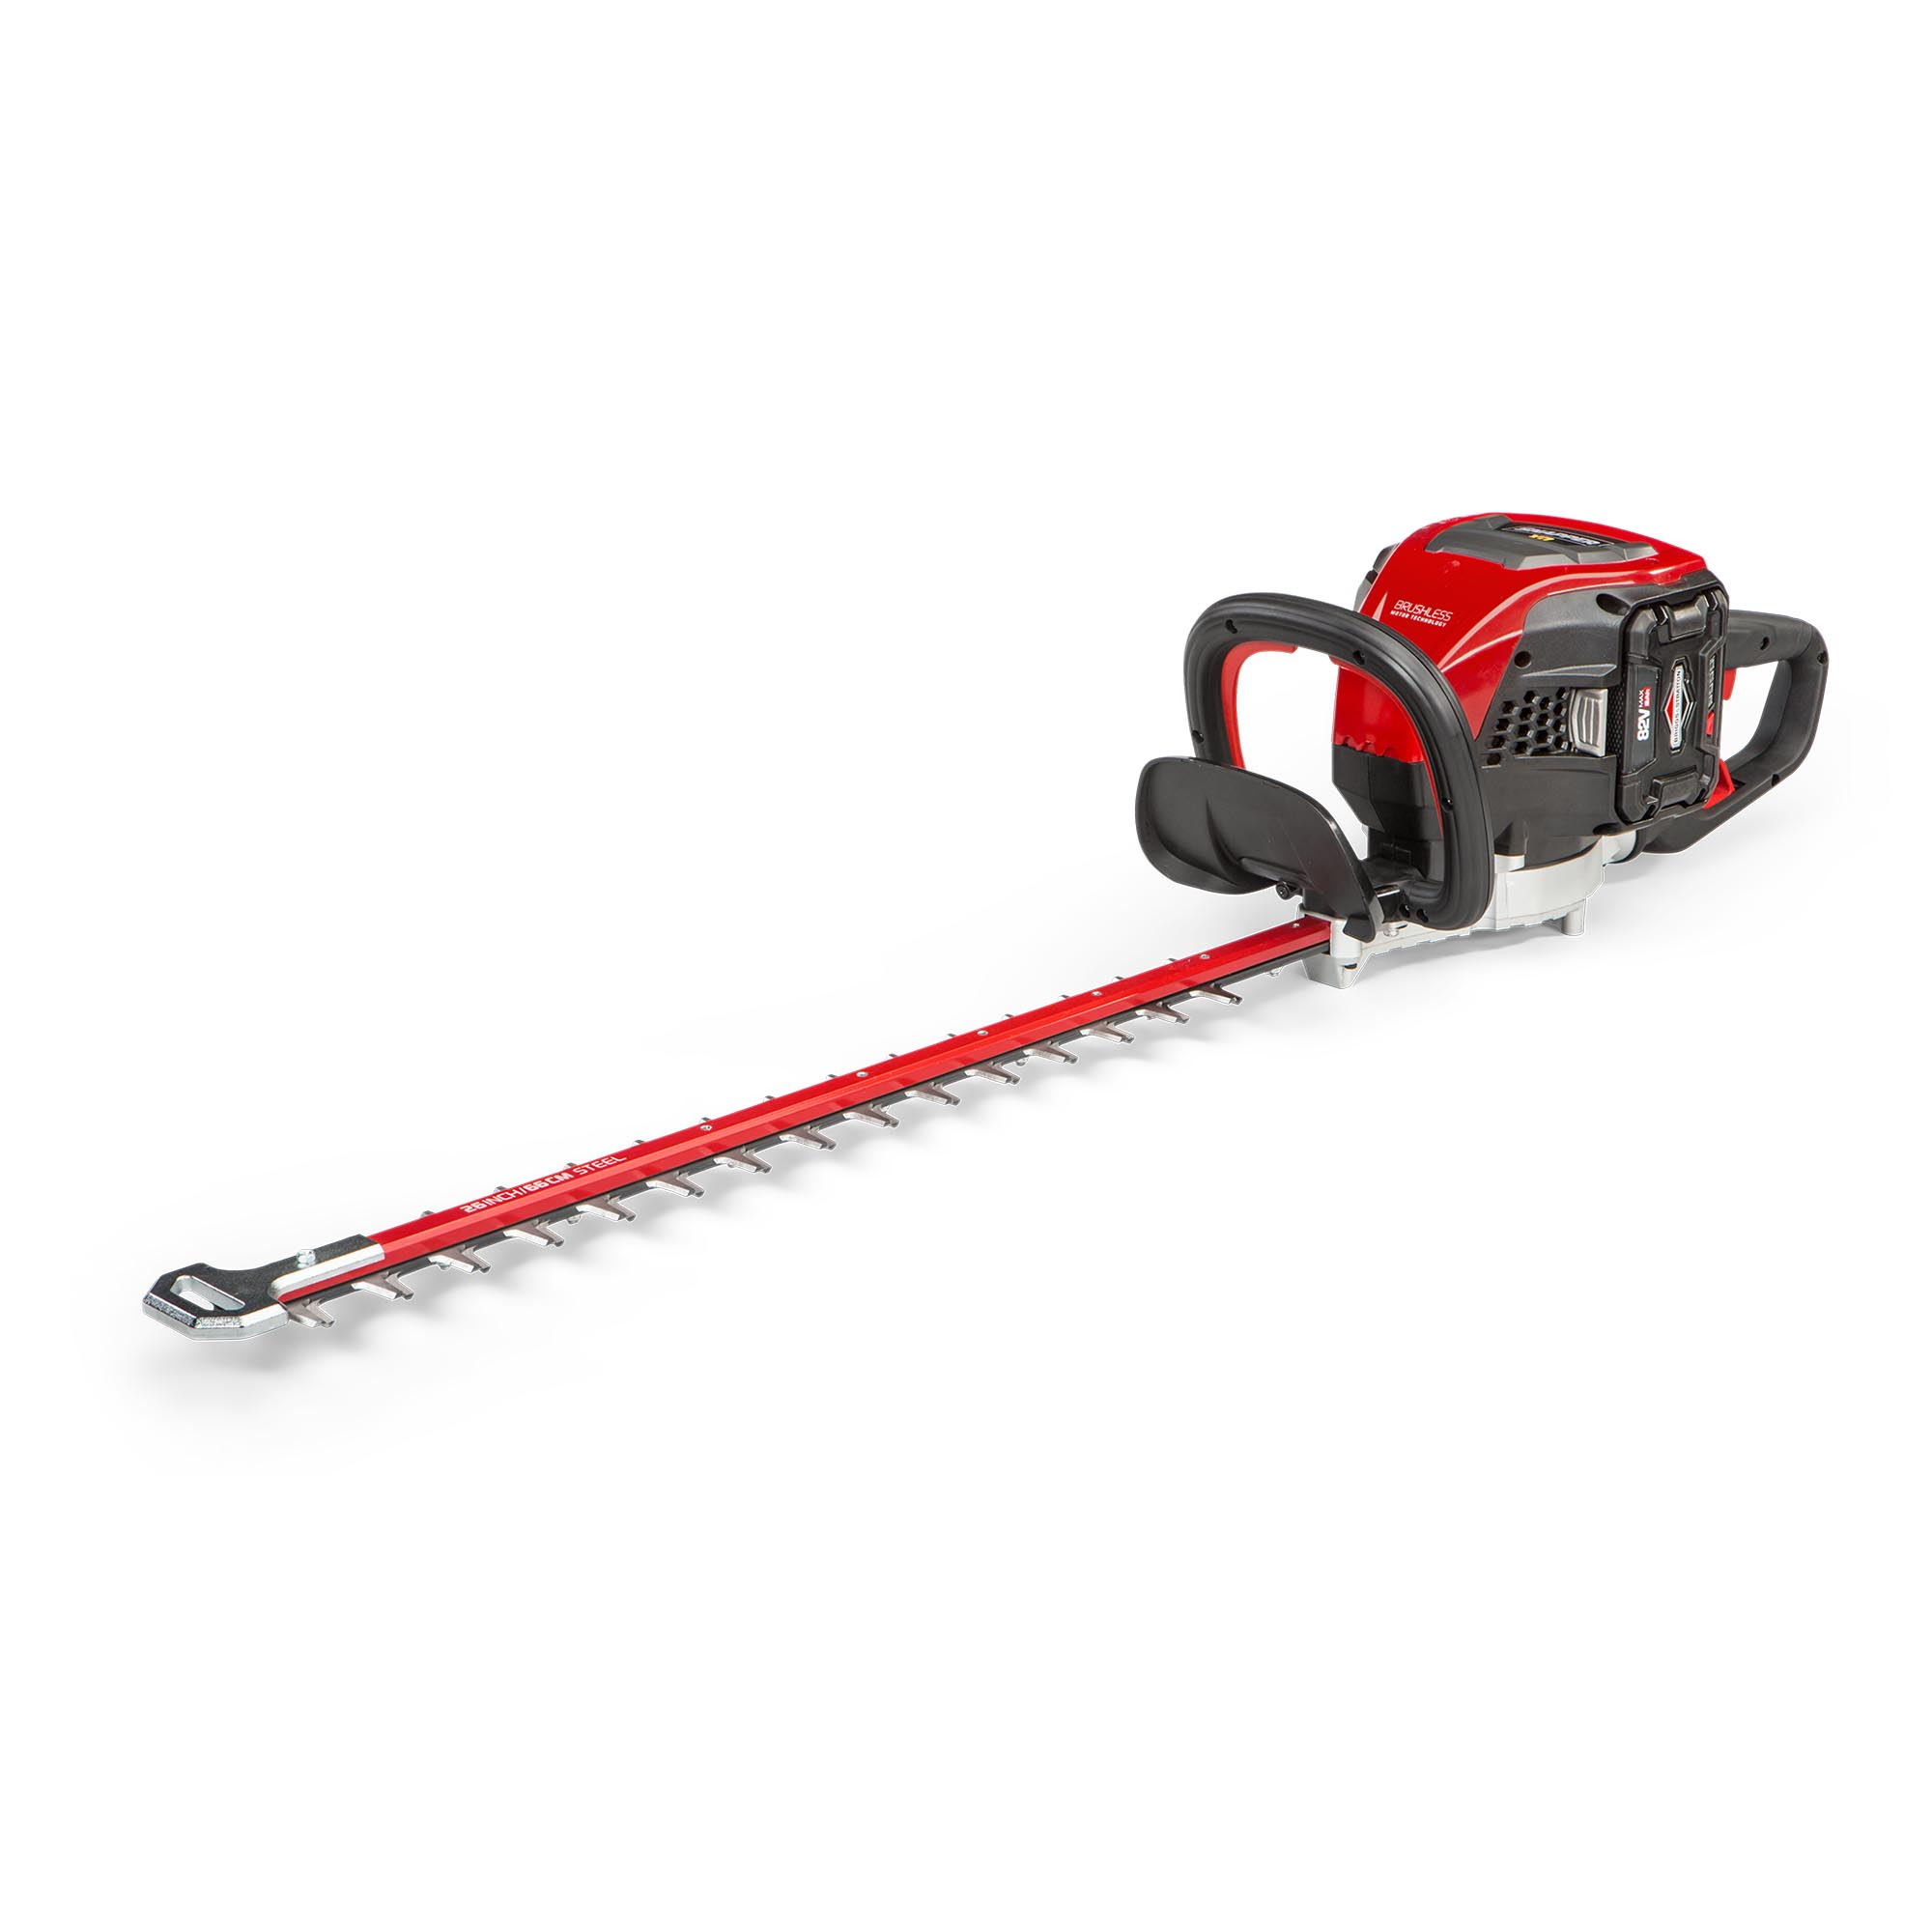 Snapper XD 82 Volt Max Lithium Ion Battery Cordless Hedge Trimmer   1696769 by Snapper